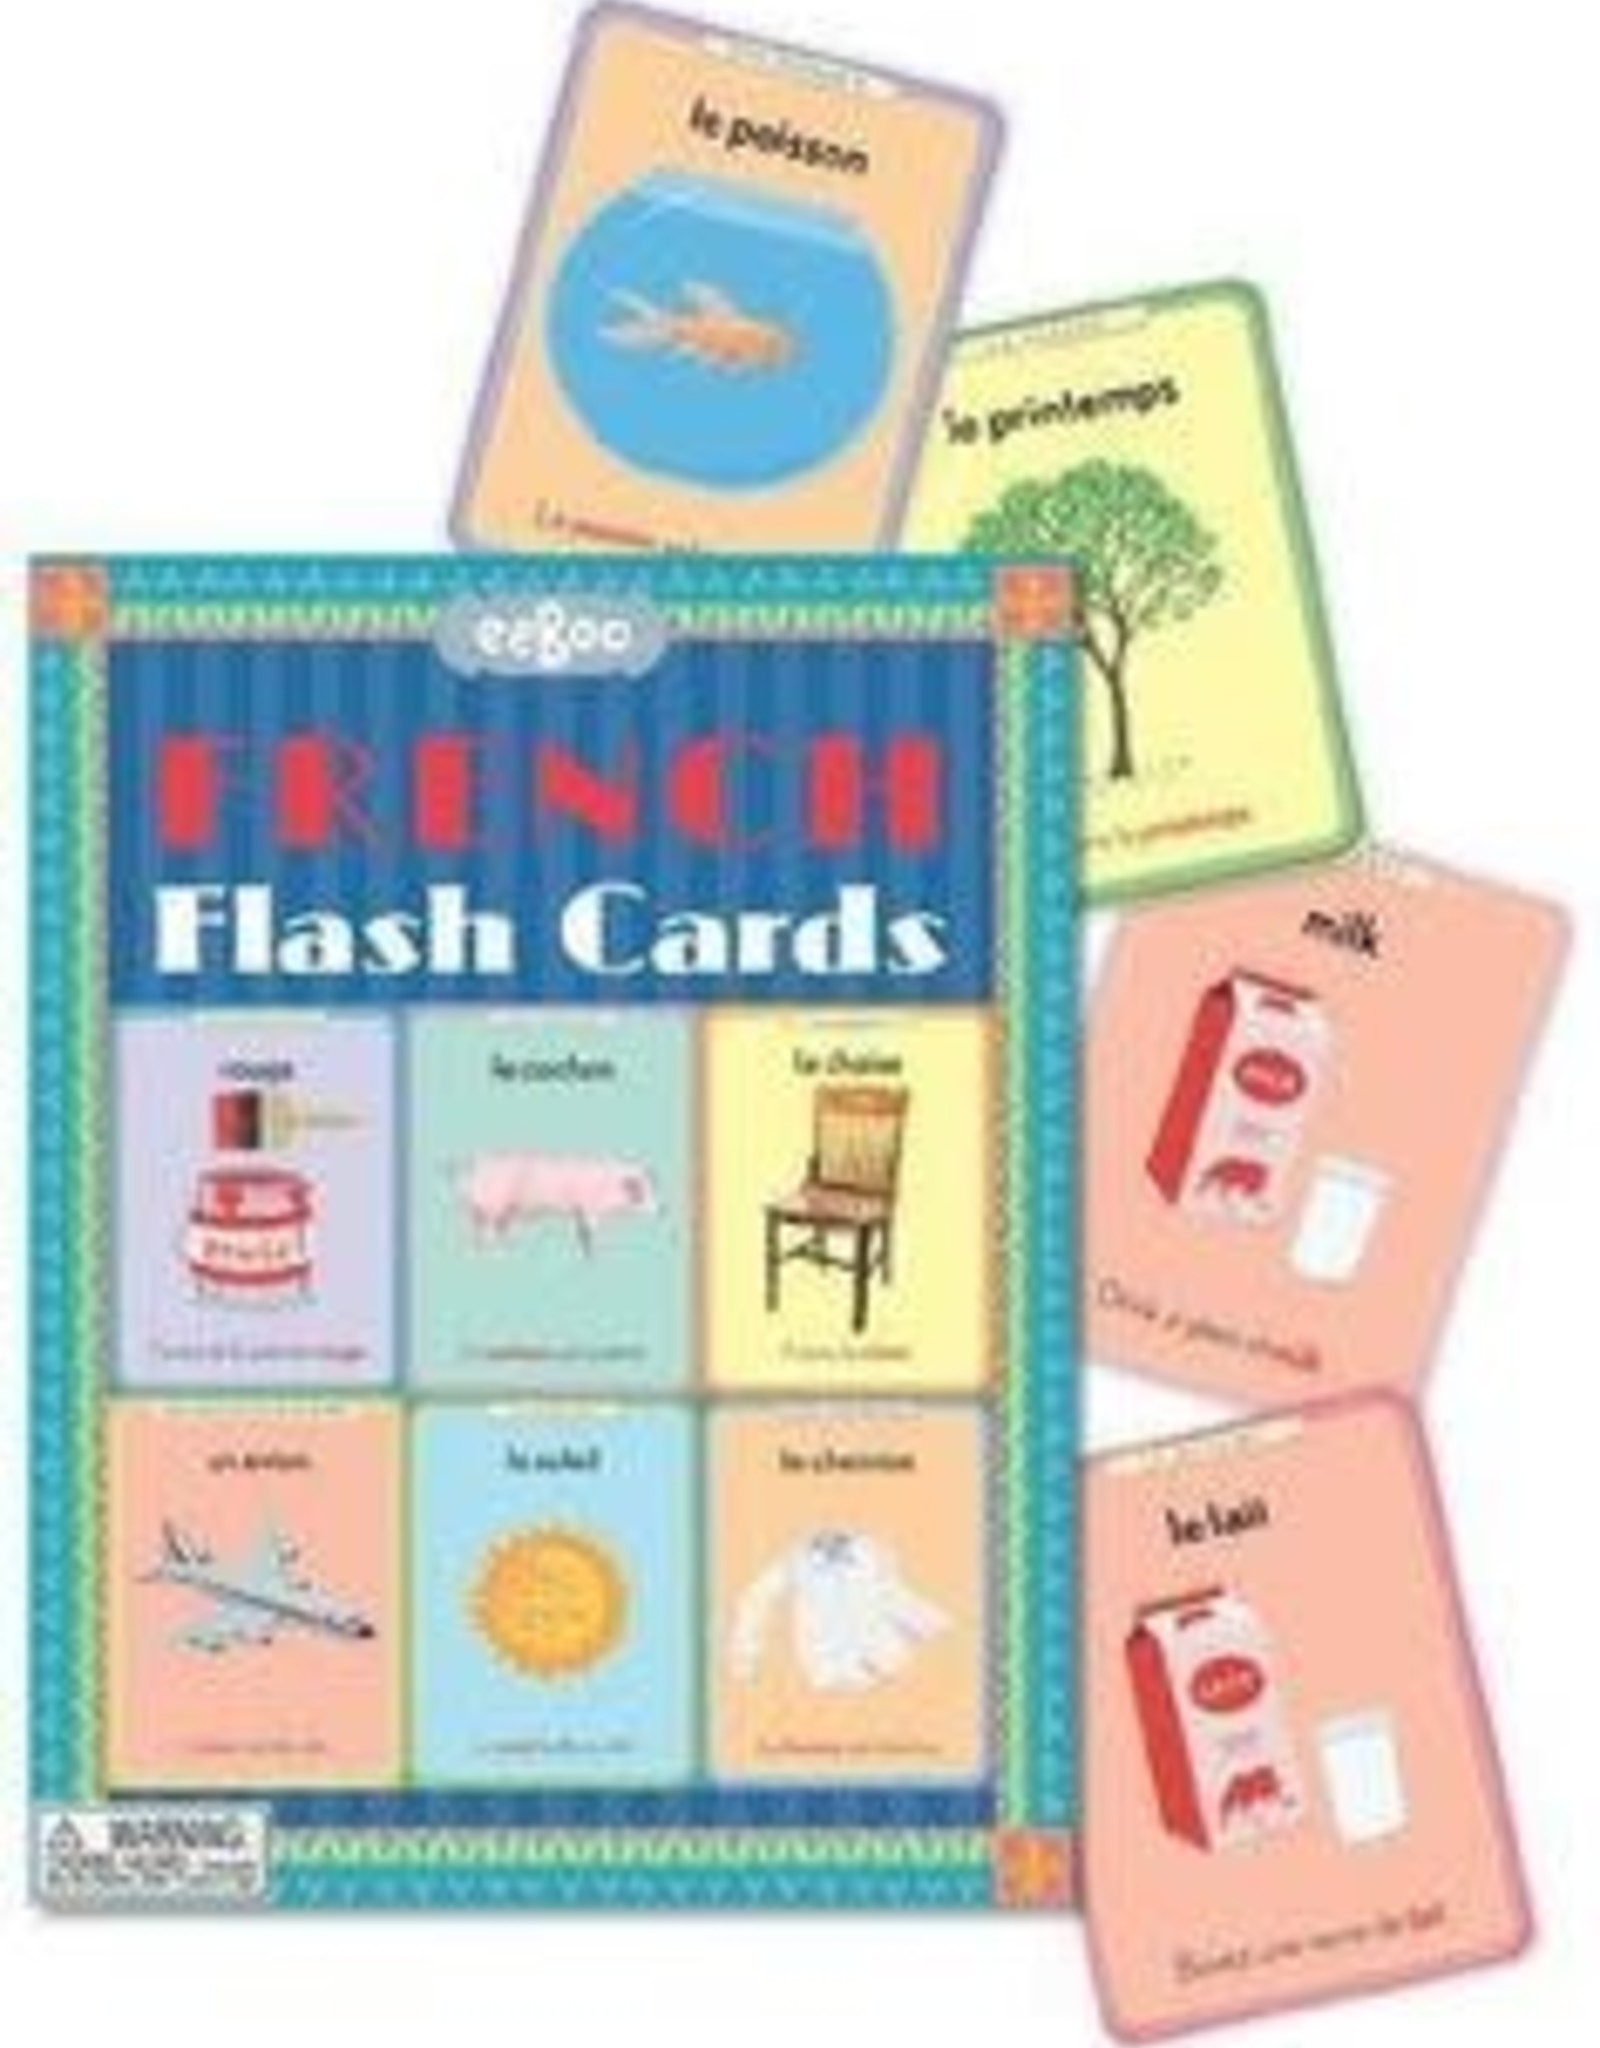 eeBoo LANGUAGE FLASH CARD FRENCH